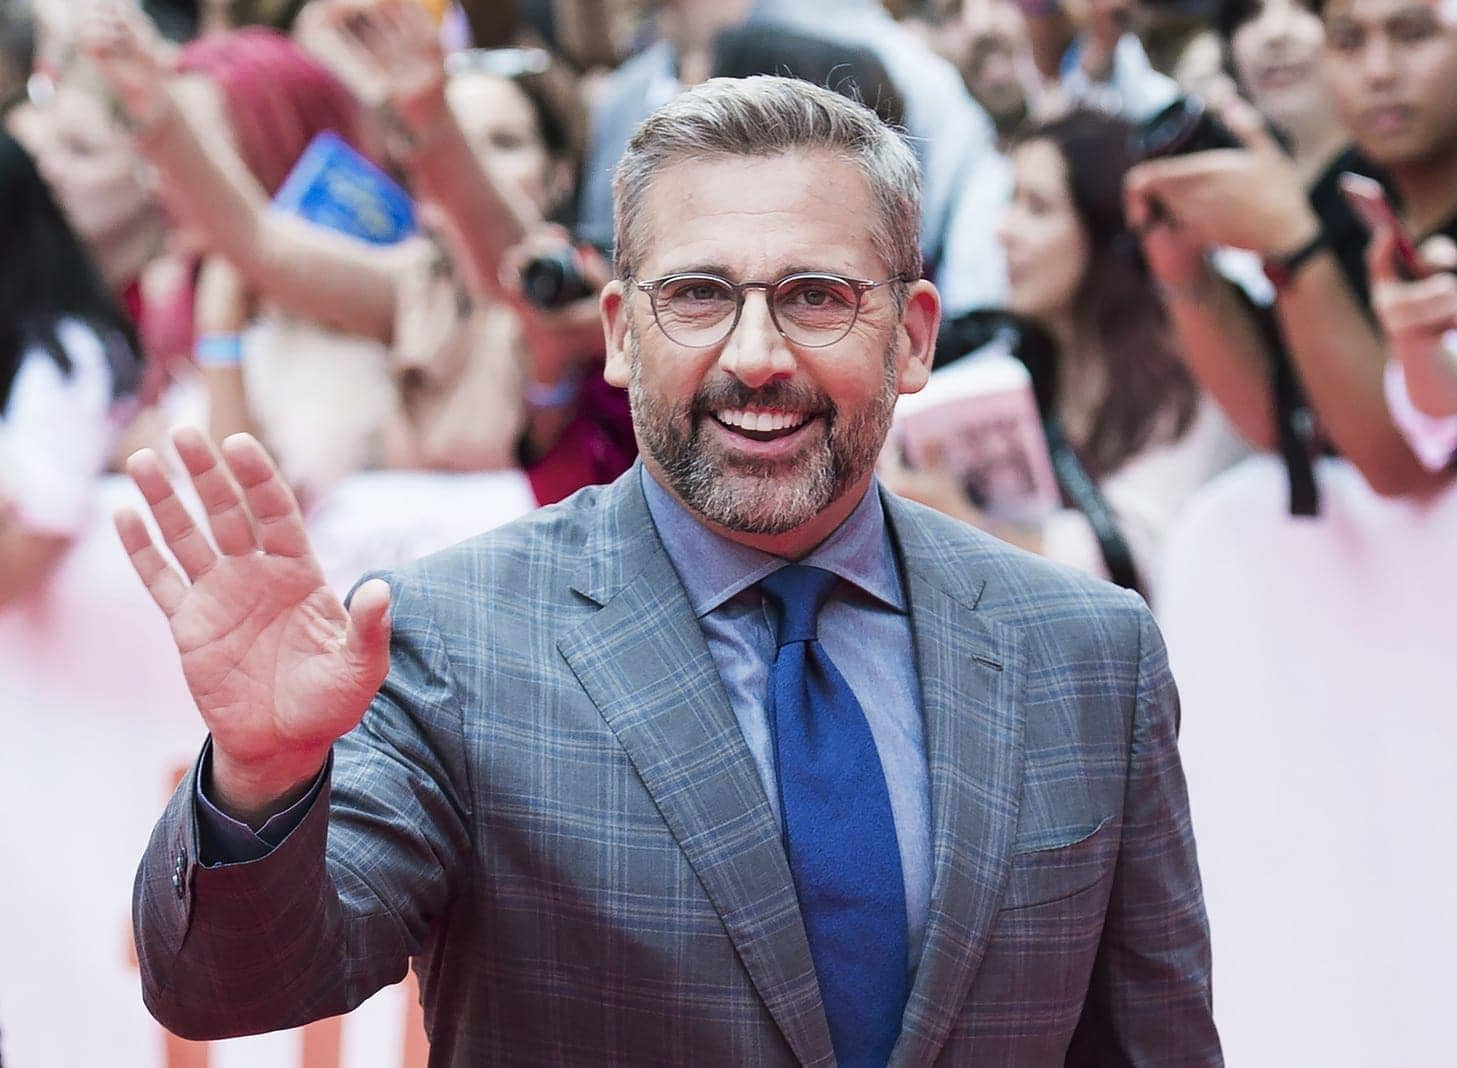 Steve Carell BS Studium